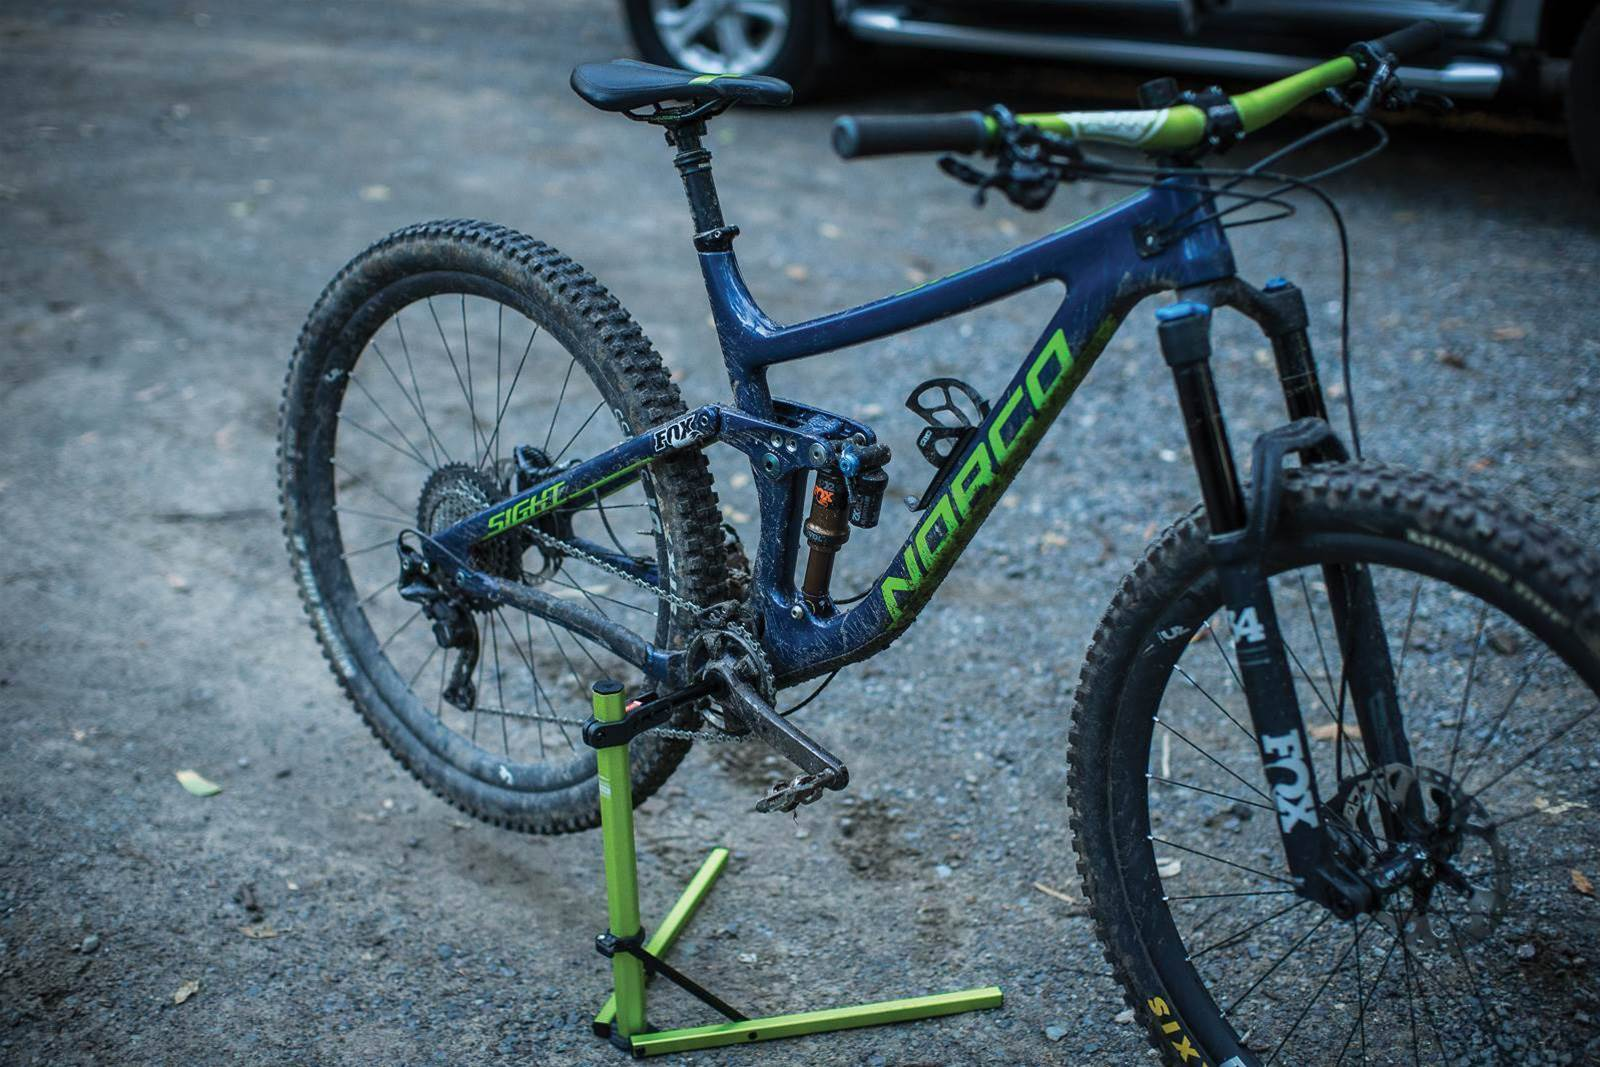 TESTED: Granite Designs HEX stand